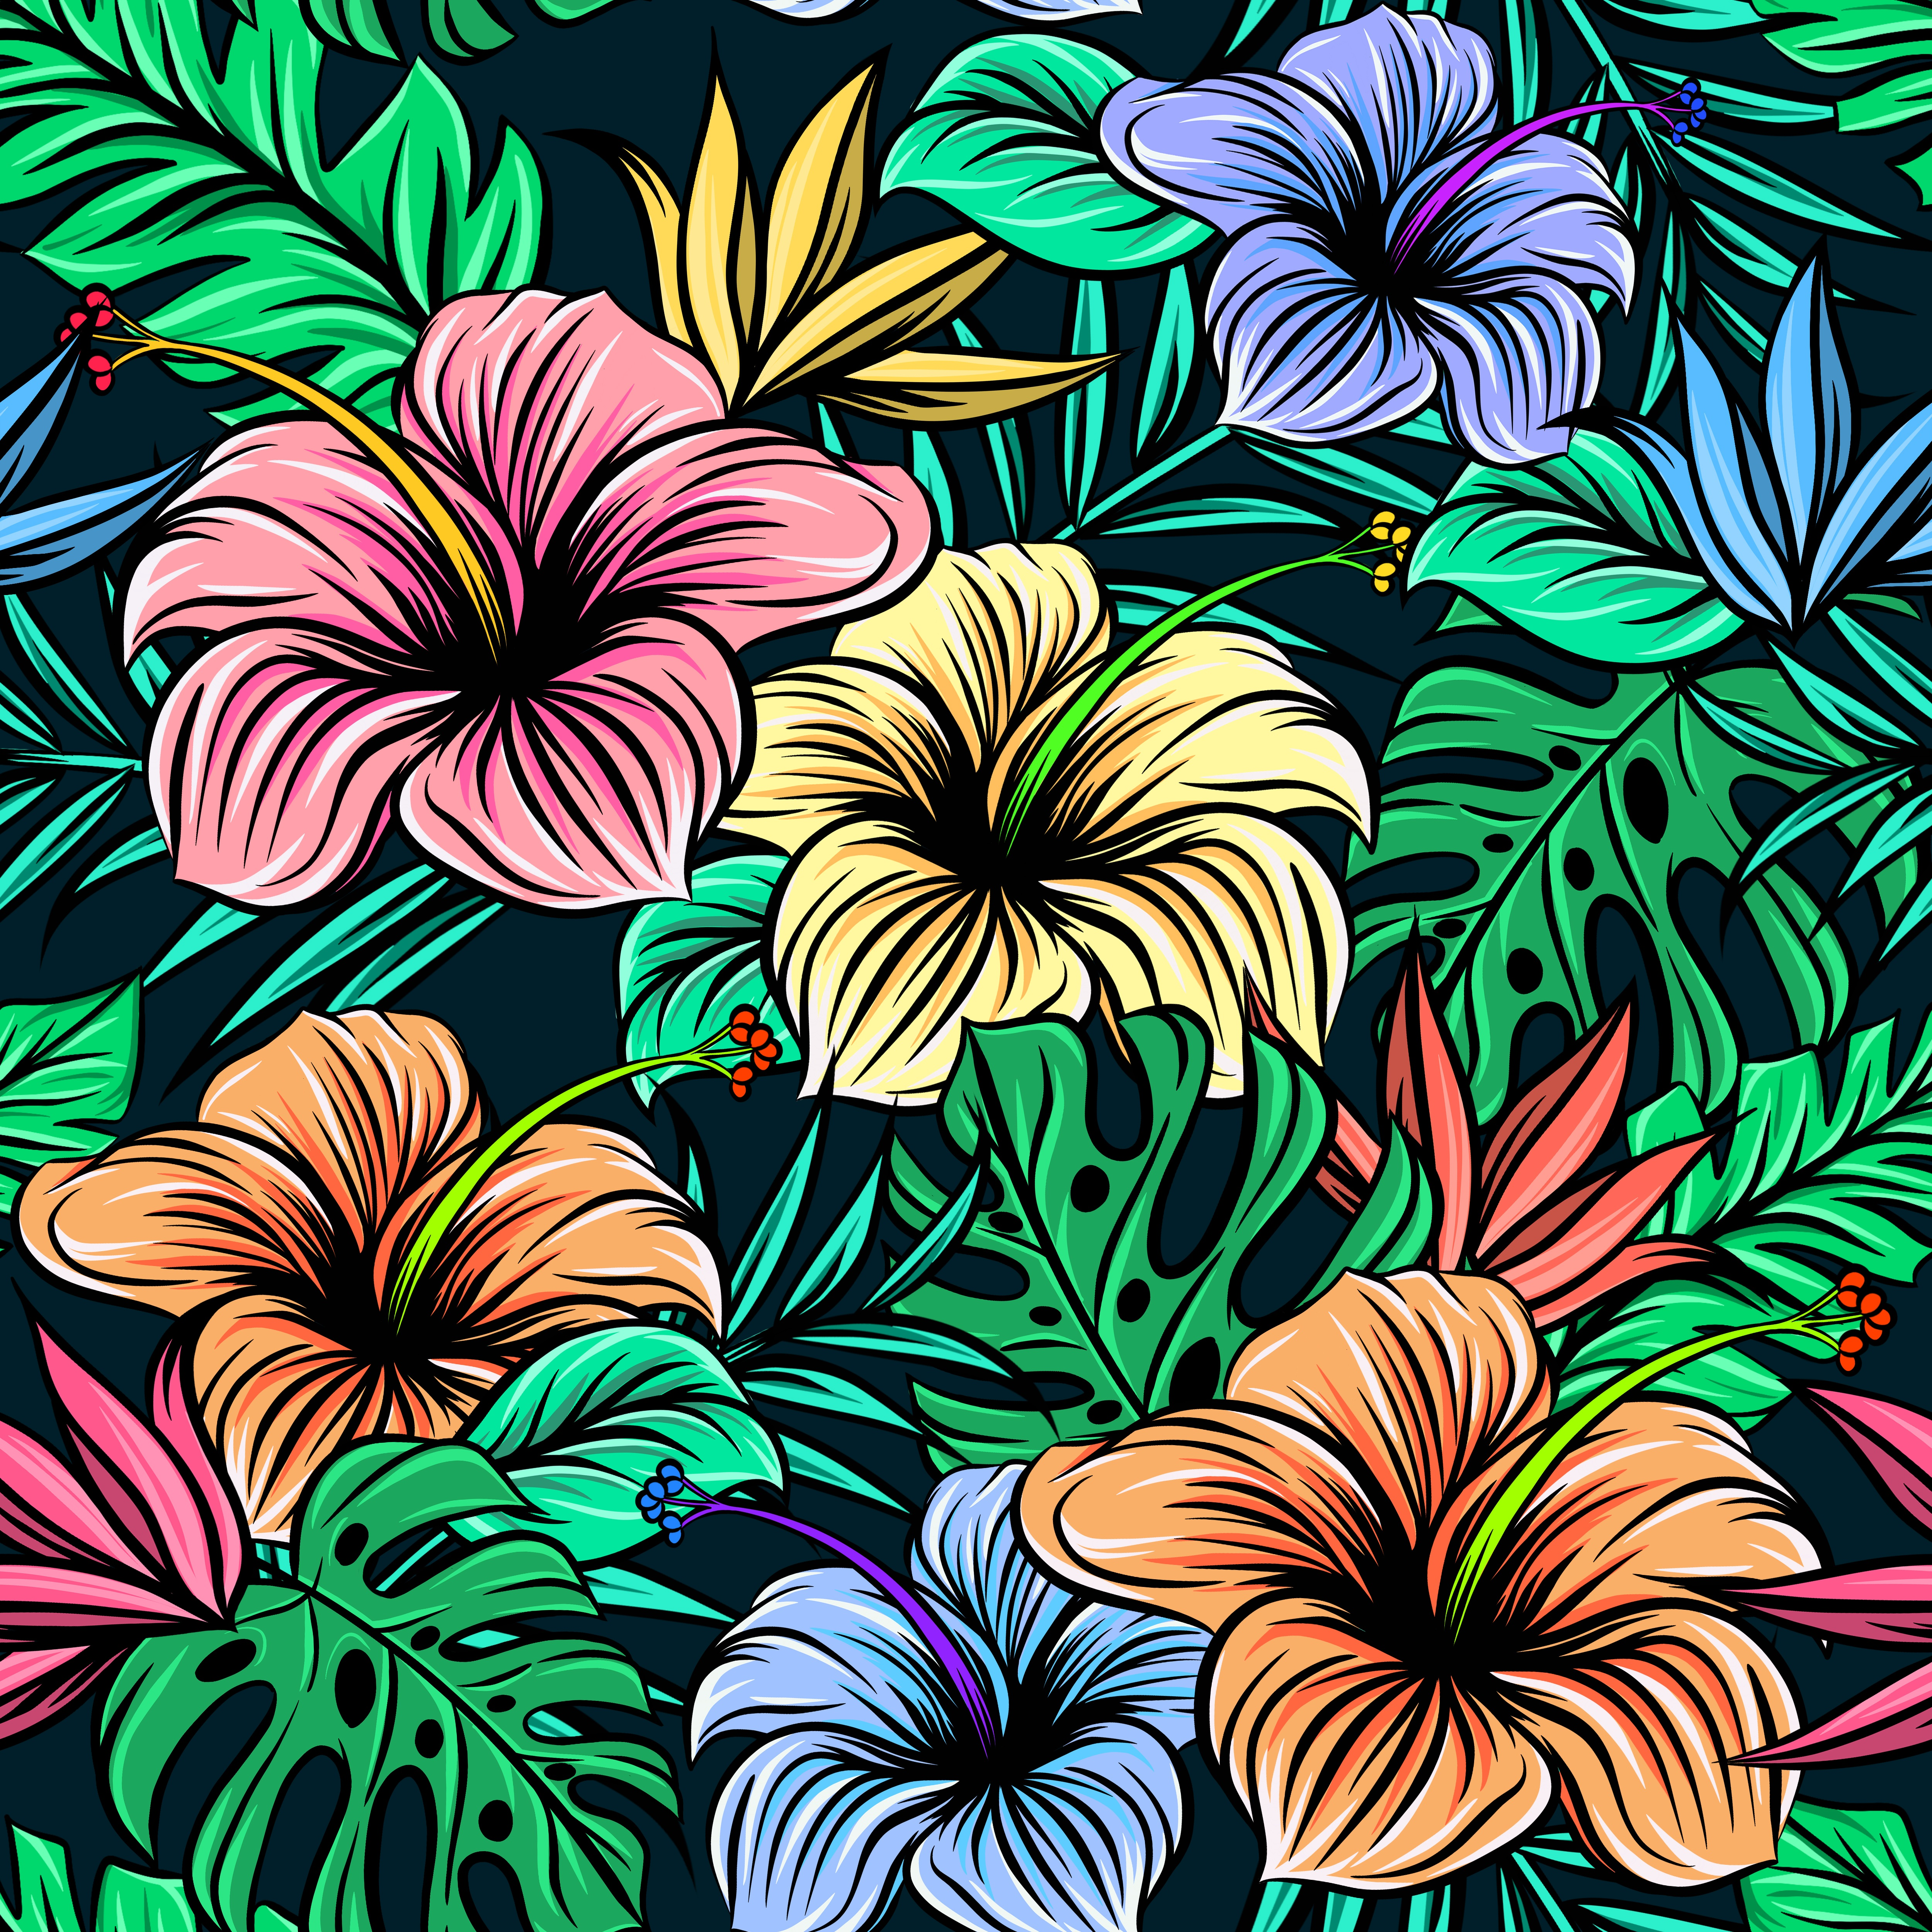 81076 download wallpaper Flowers, Leaves, Patterns, Vector, Hibiscus, Exotic screensavers and pictures for free